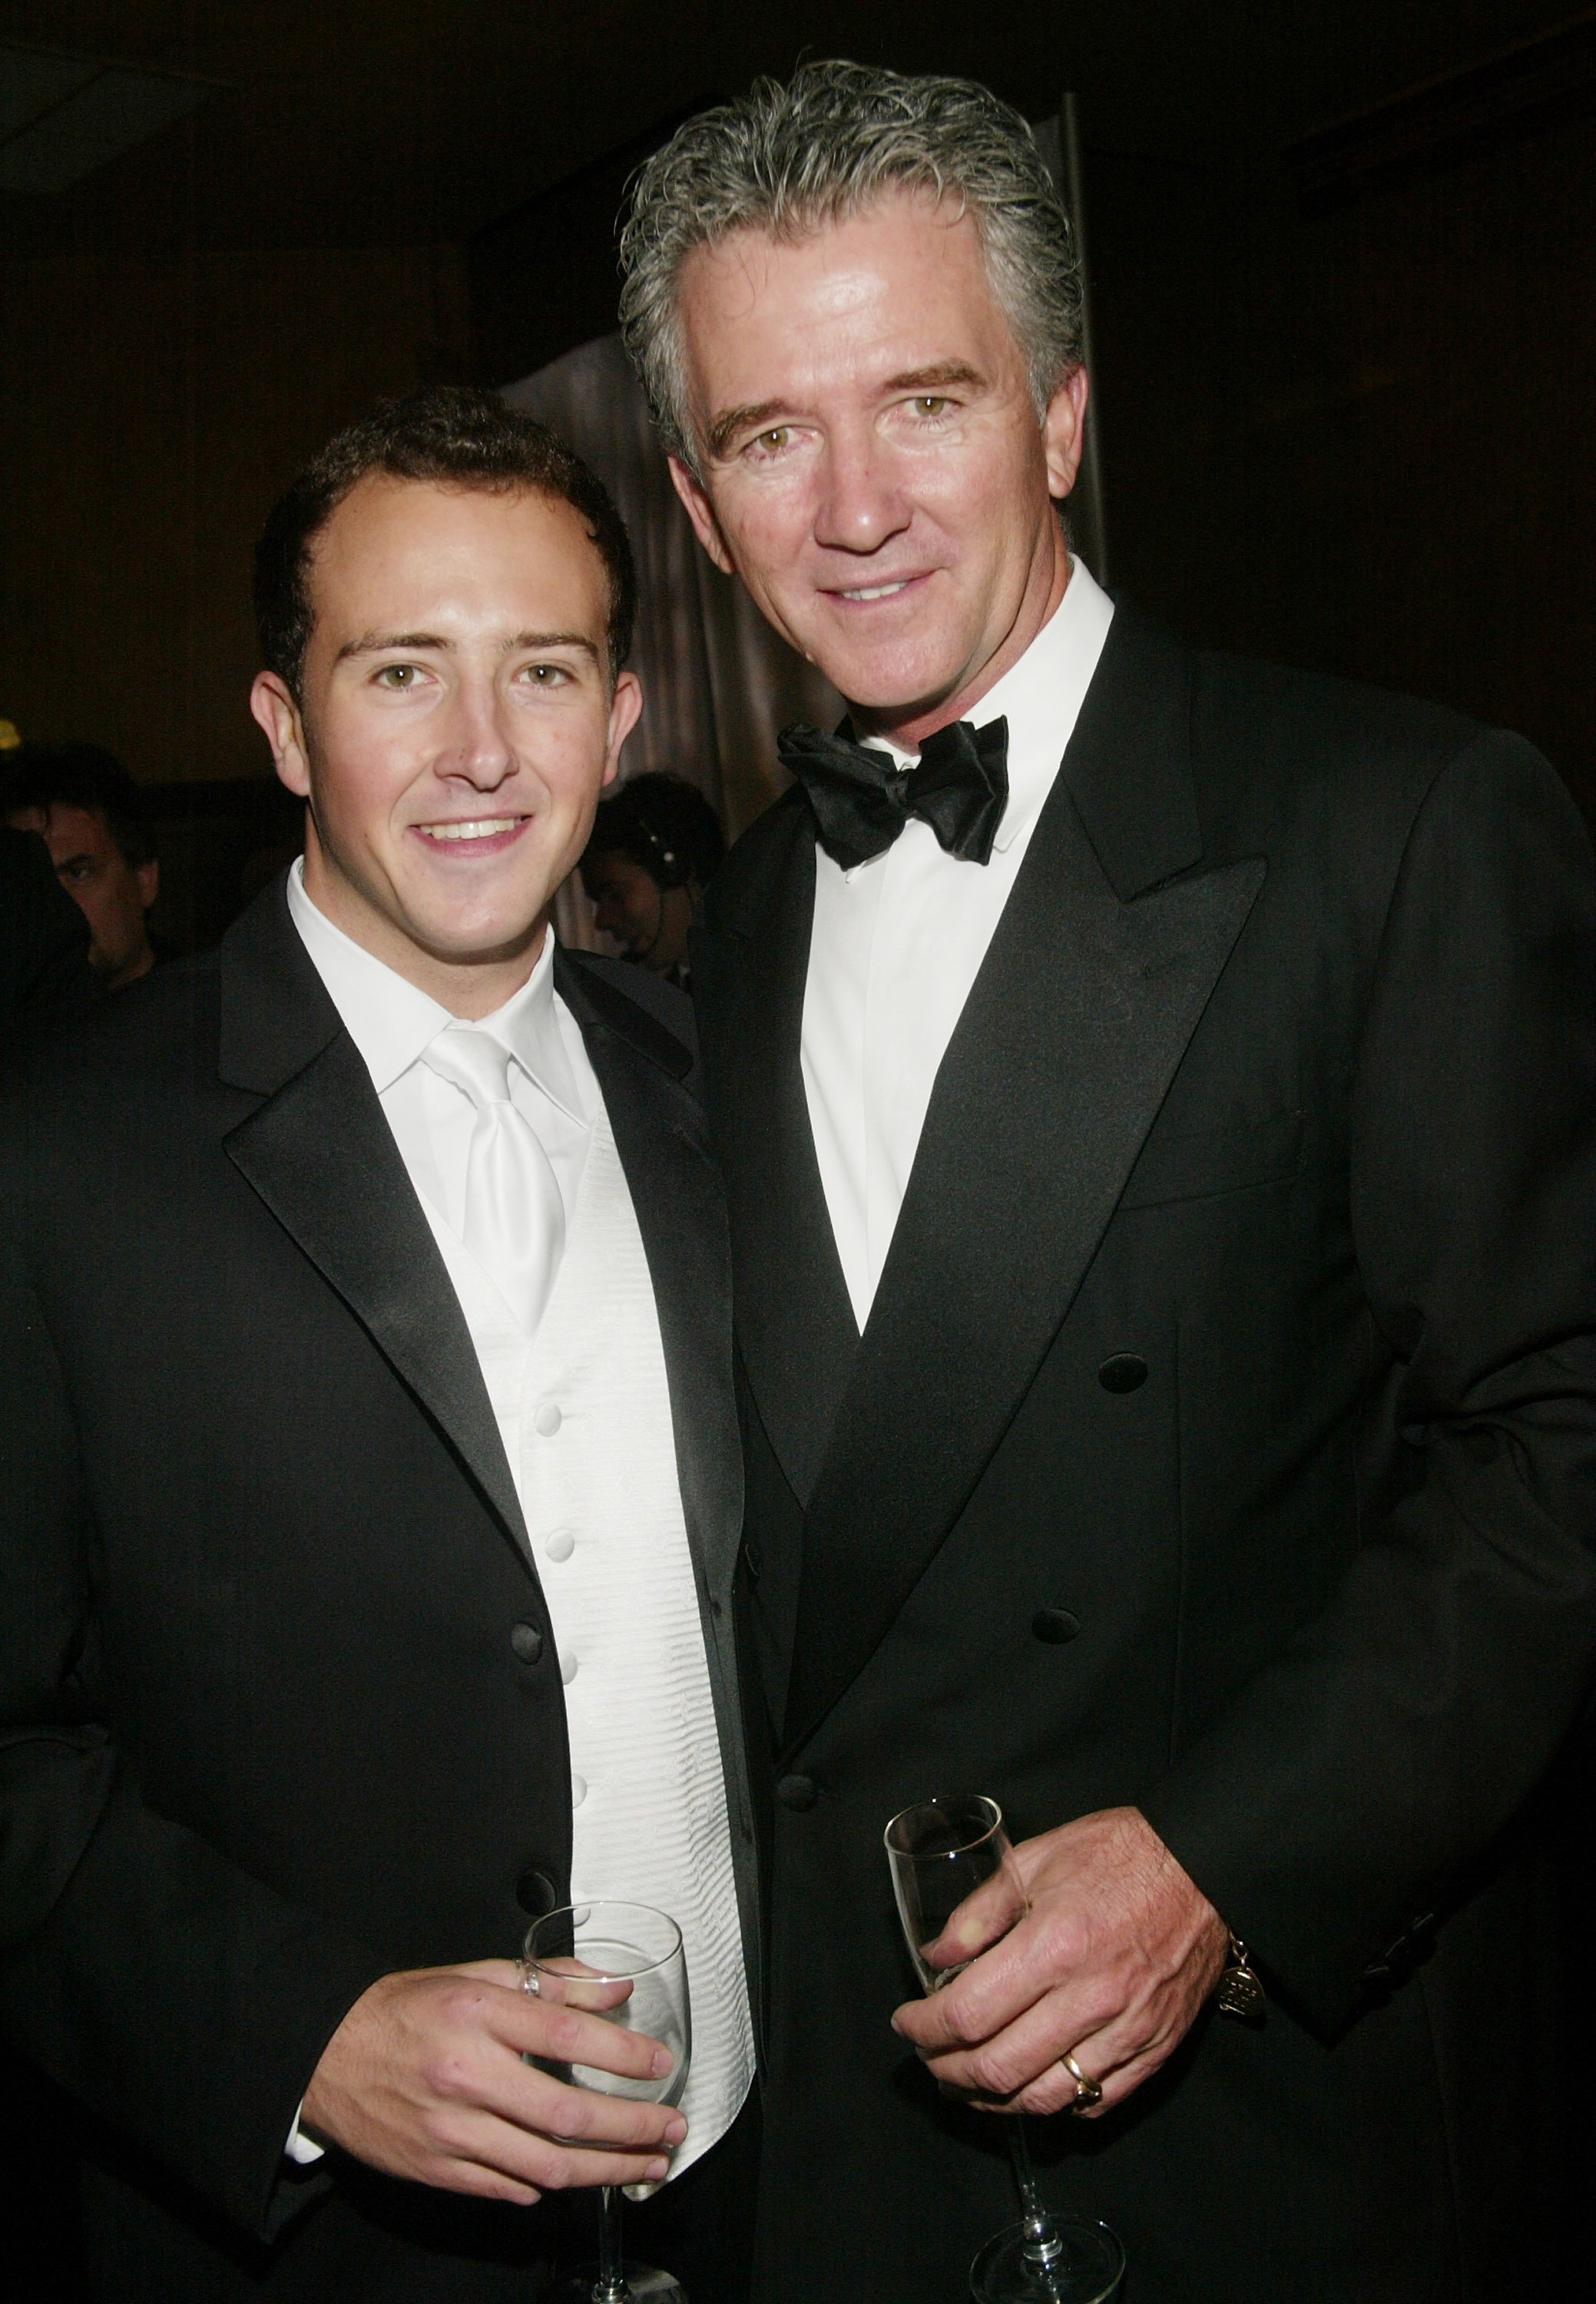 Patrick Duffy und Sohn Conor am 2. November 2003 in New York City | Quelle:  Getty Images